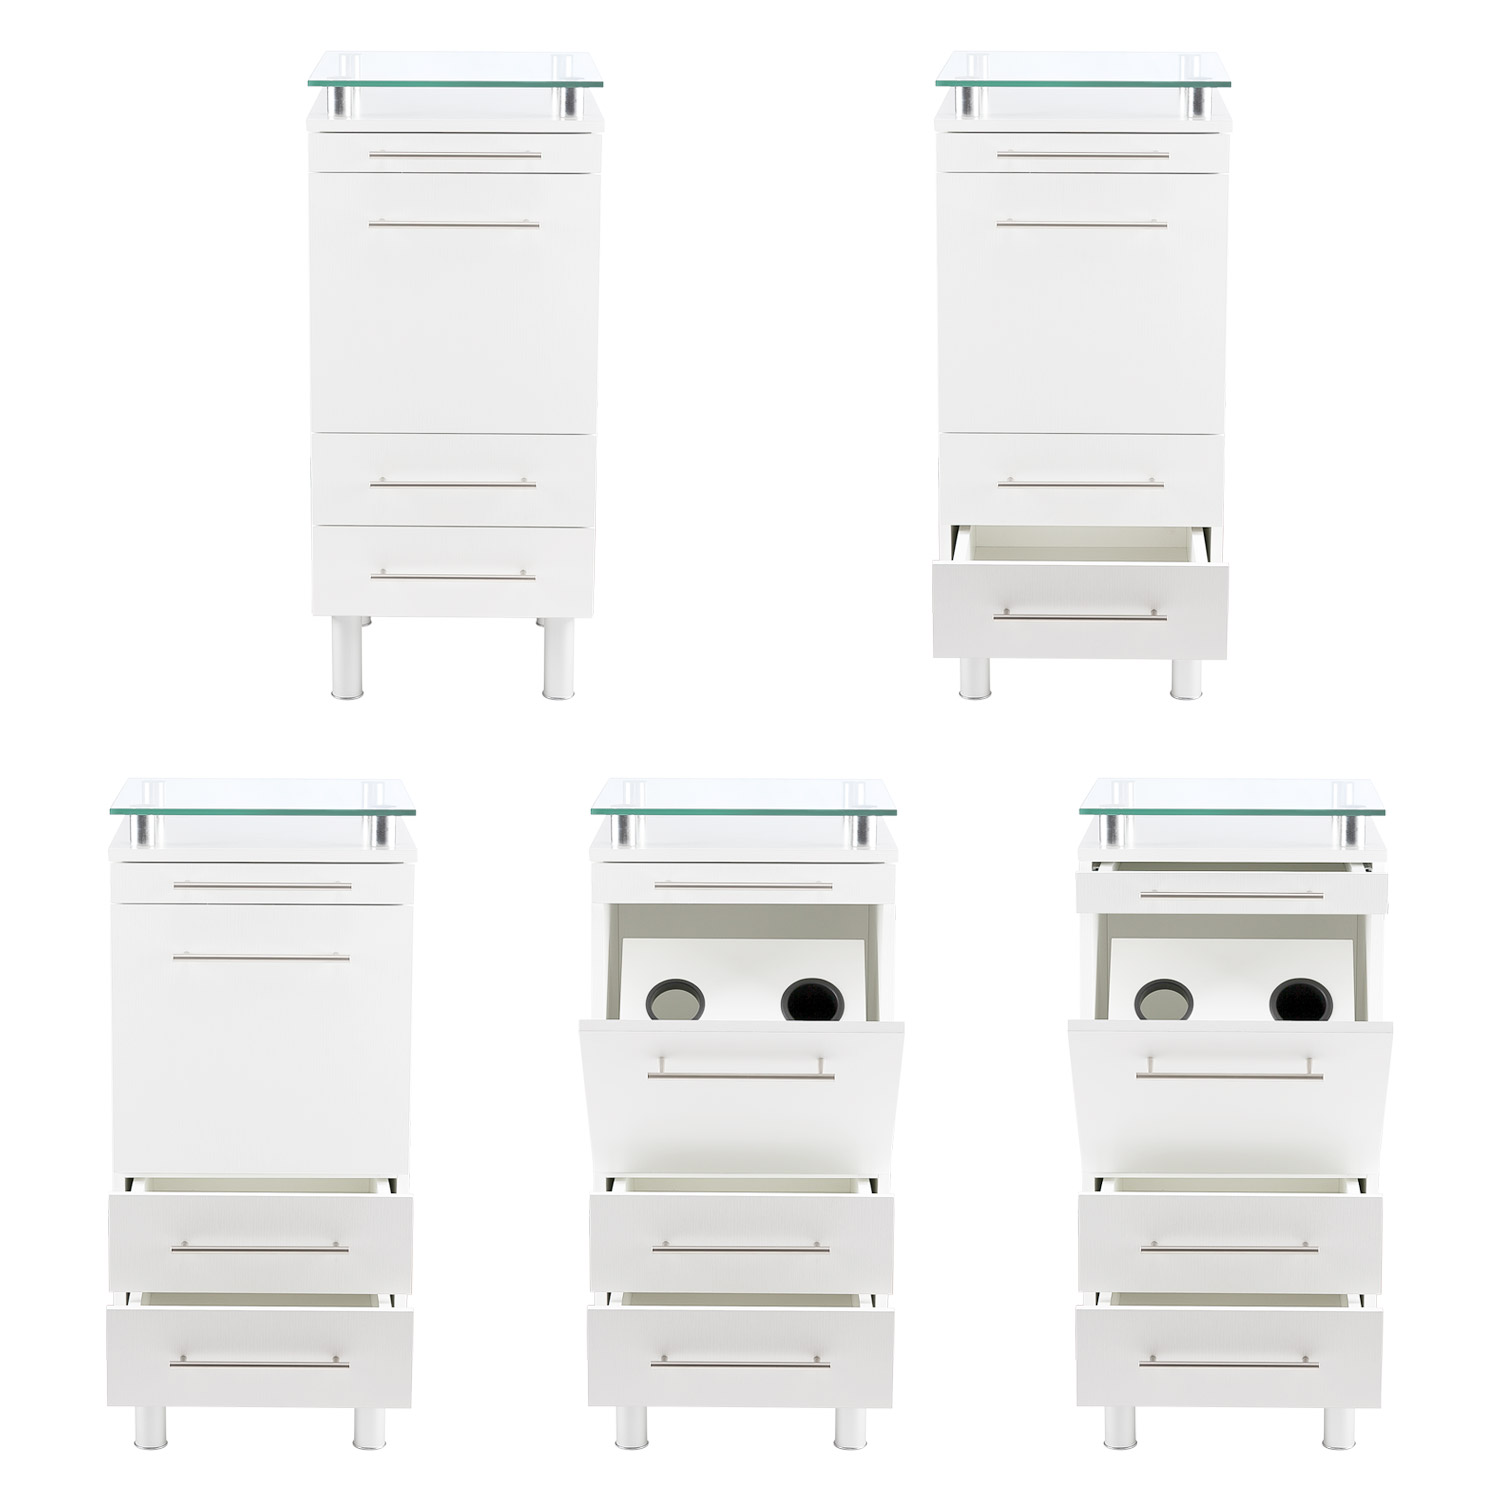 White Amy Salon Styling Station with Tilt-Out Tool Drawer alternative product image 1